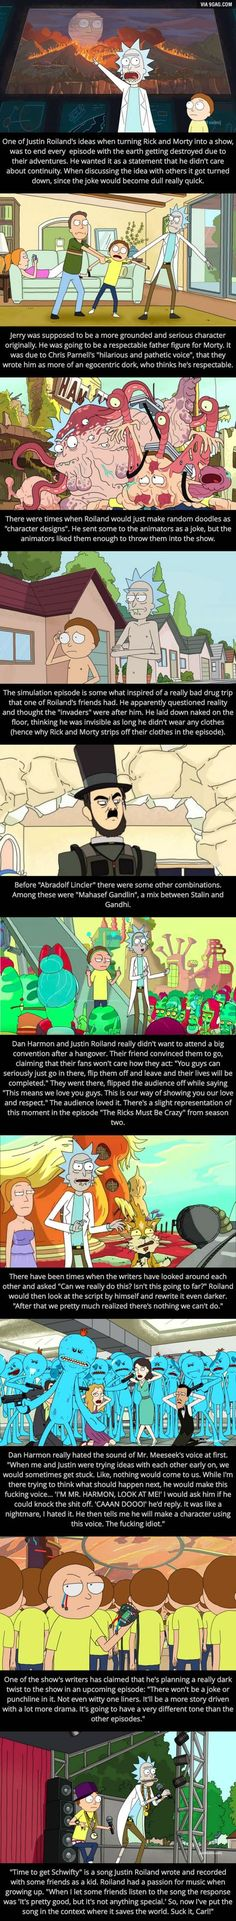 Some Rick and Morty facts, yo